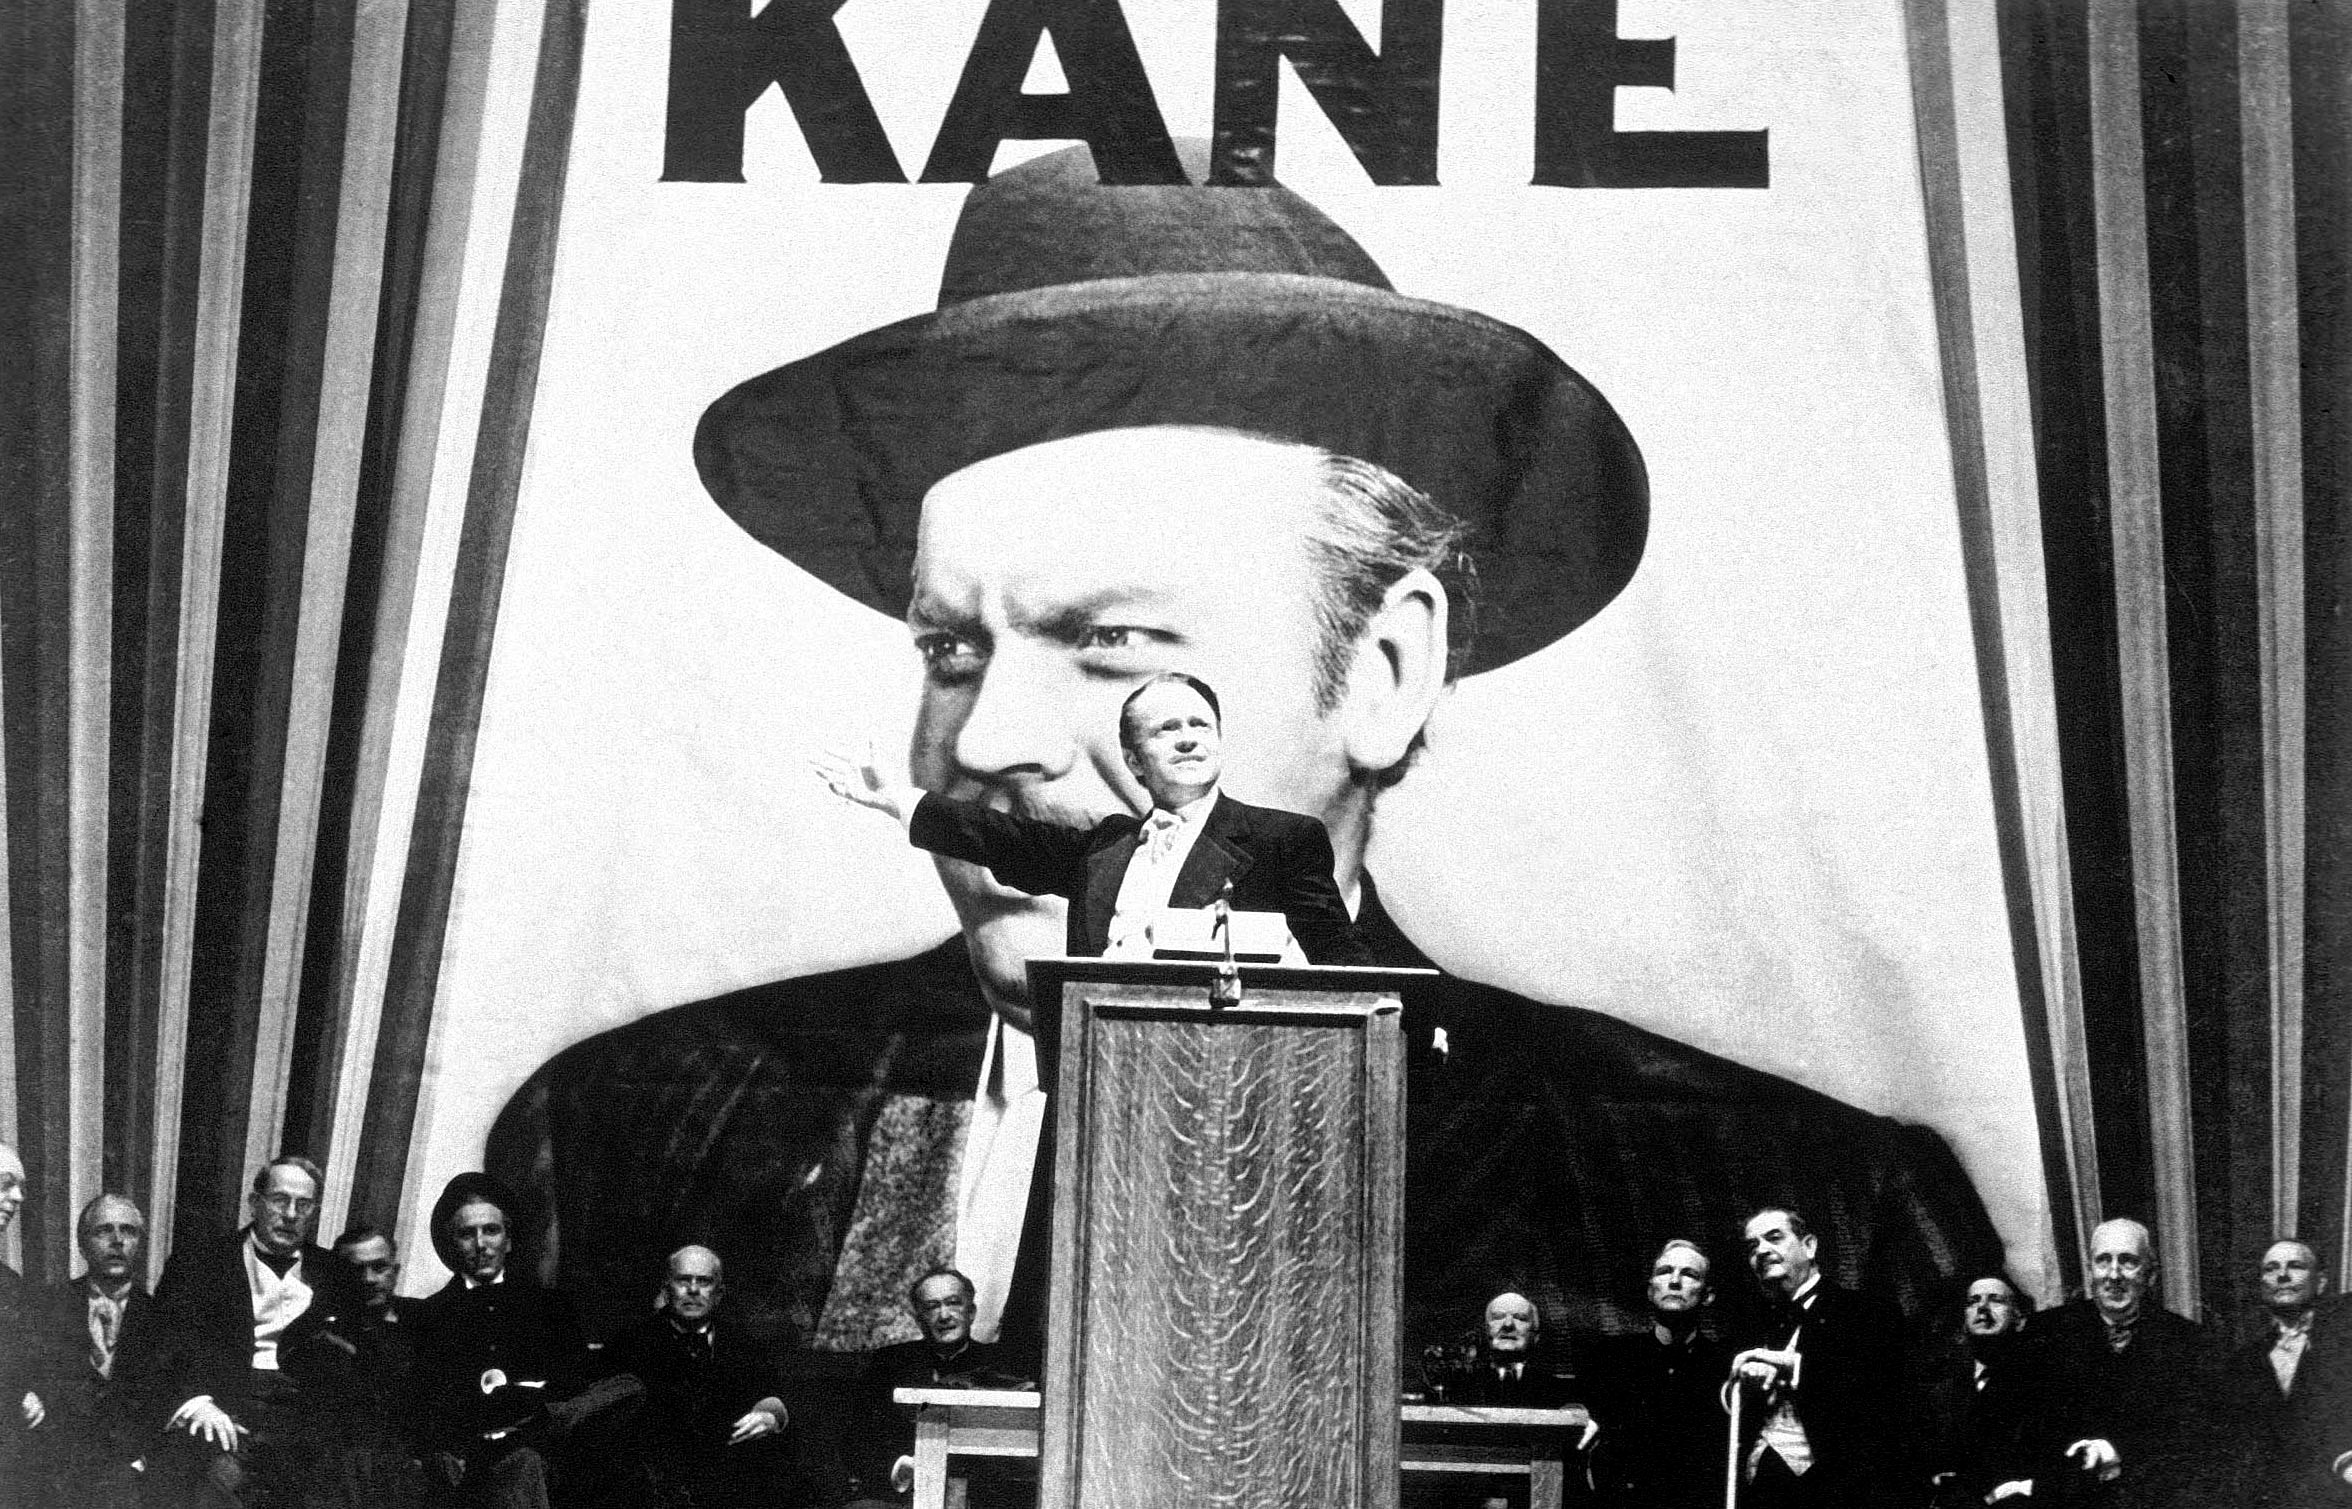 Orson Welles Citizen Kane Still Resonates In Todays Culture Citizenkane Sample Essay Papers also Examples Of Thesis Essays  Essays About English Language